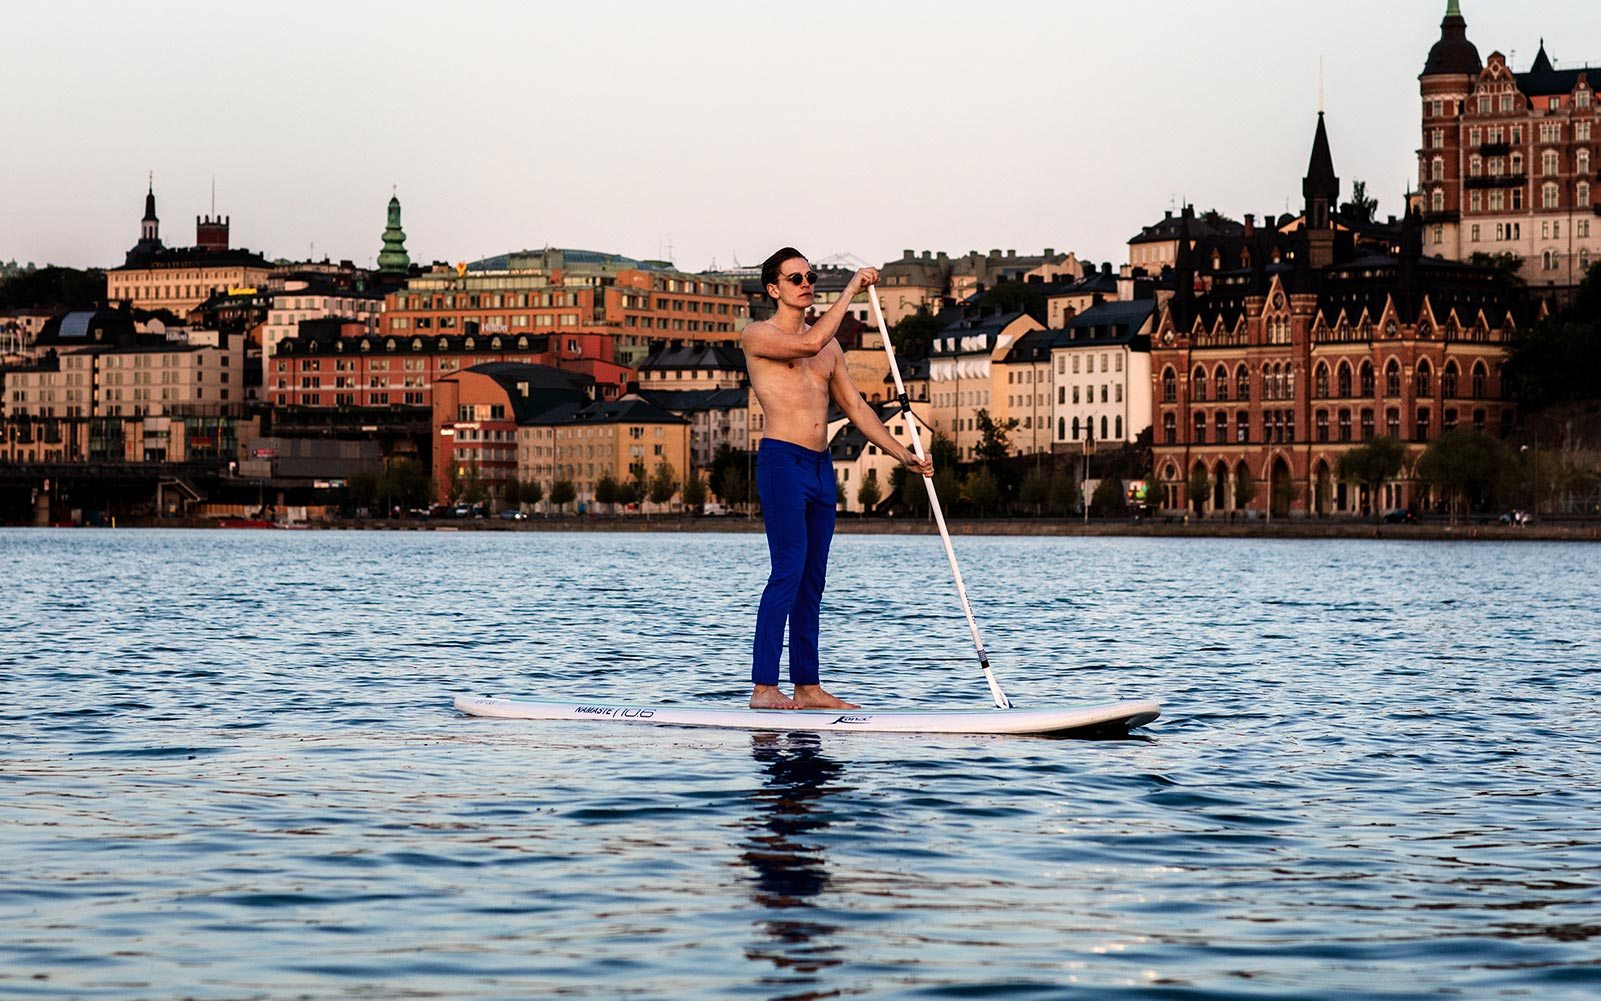 The Pants by åäö, surfing in central Stockholm